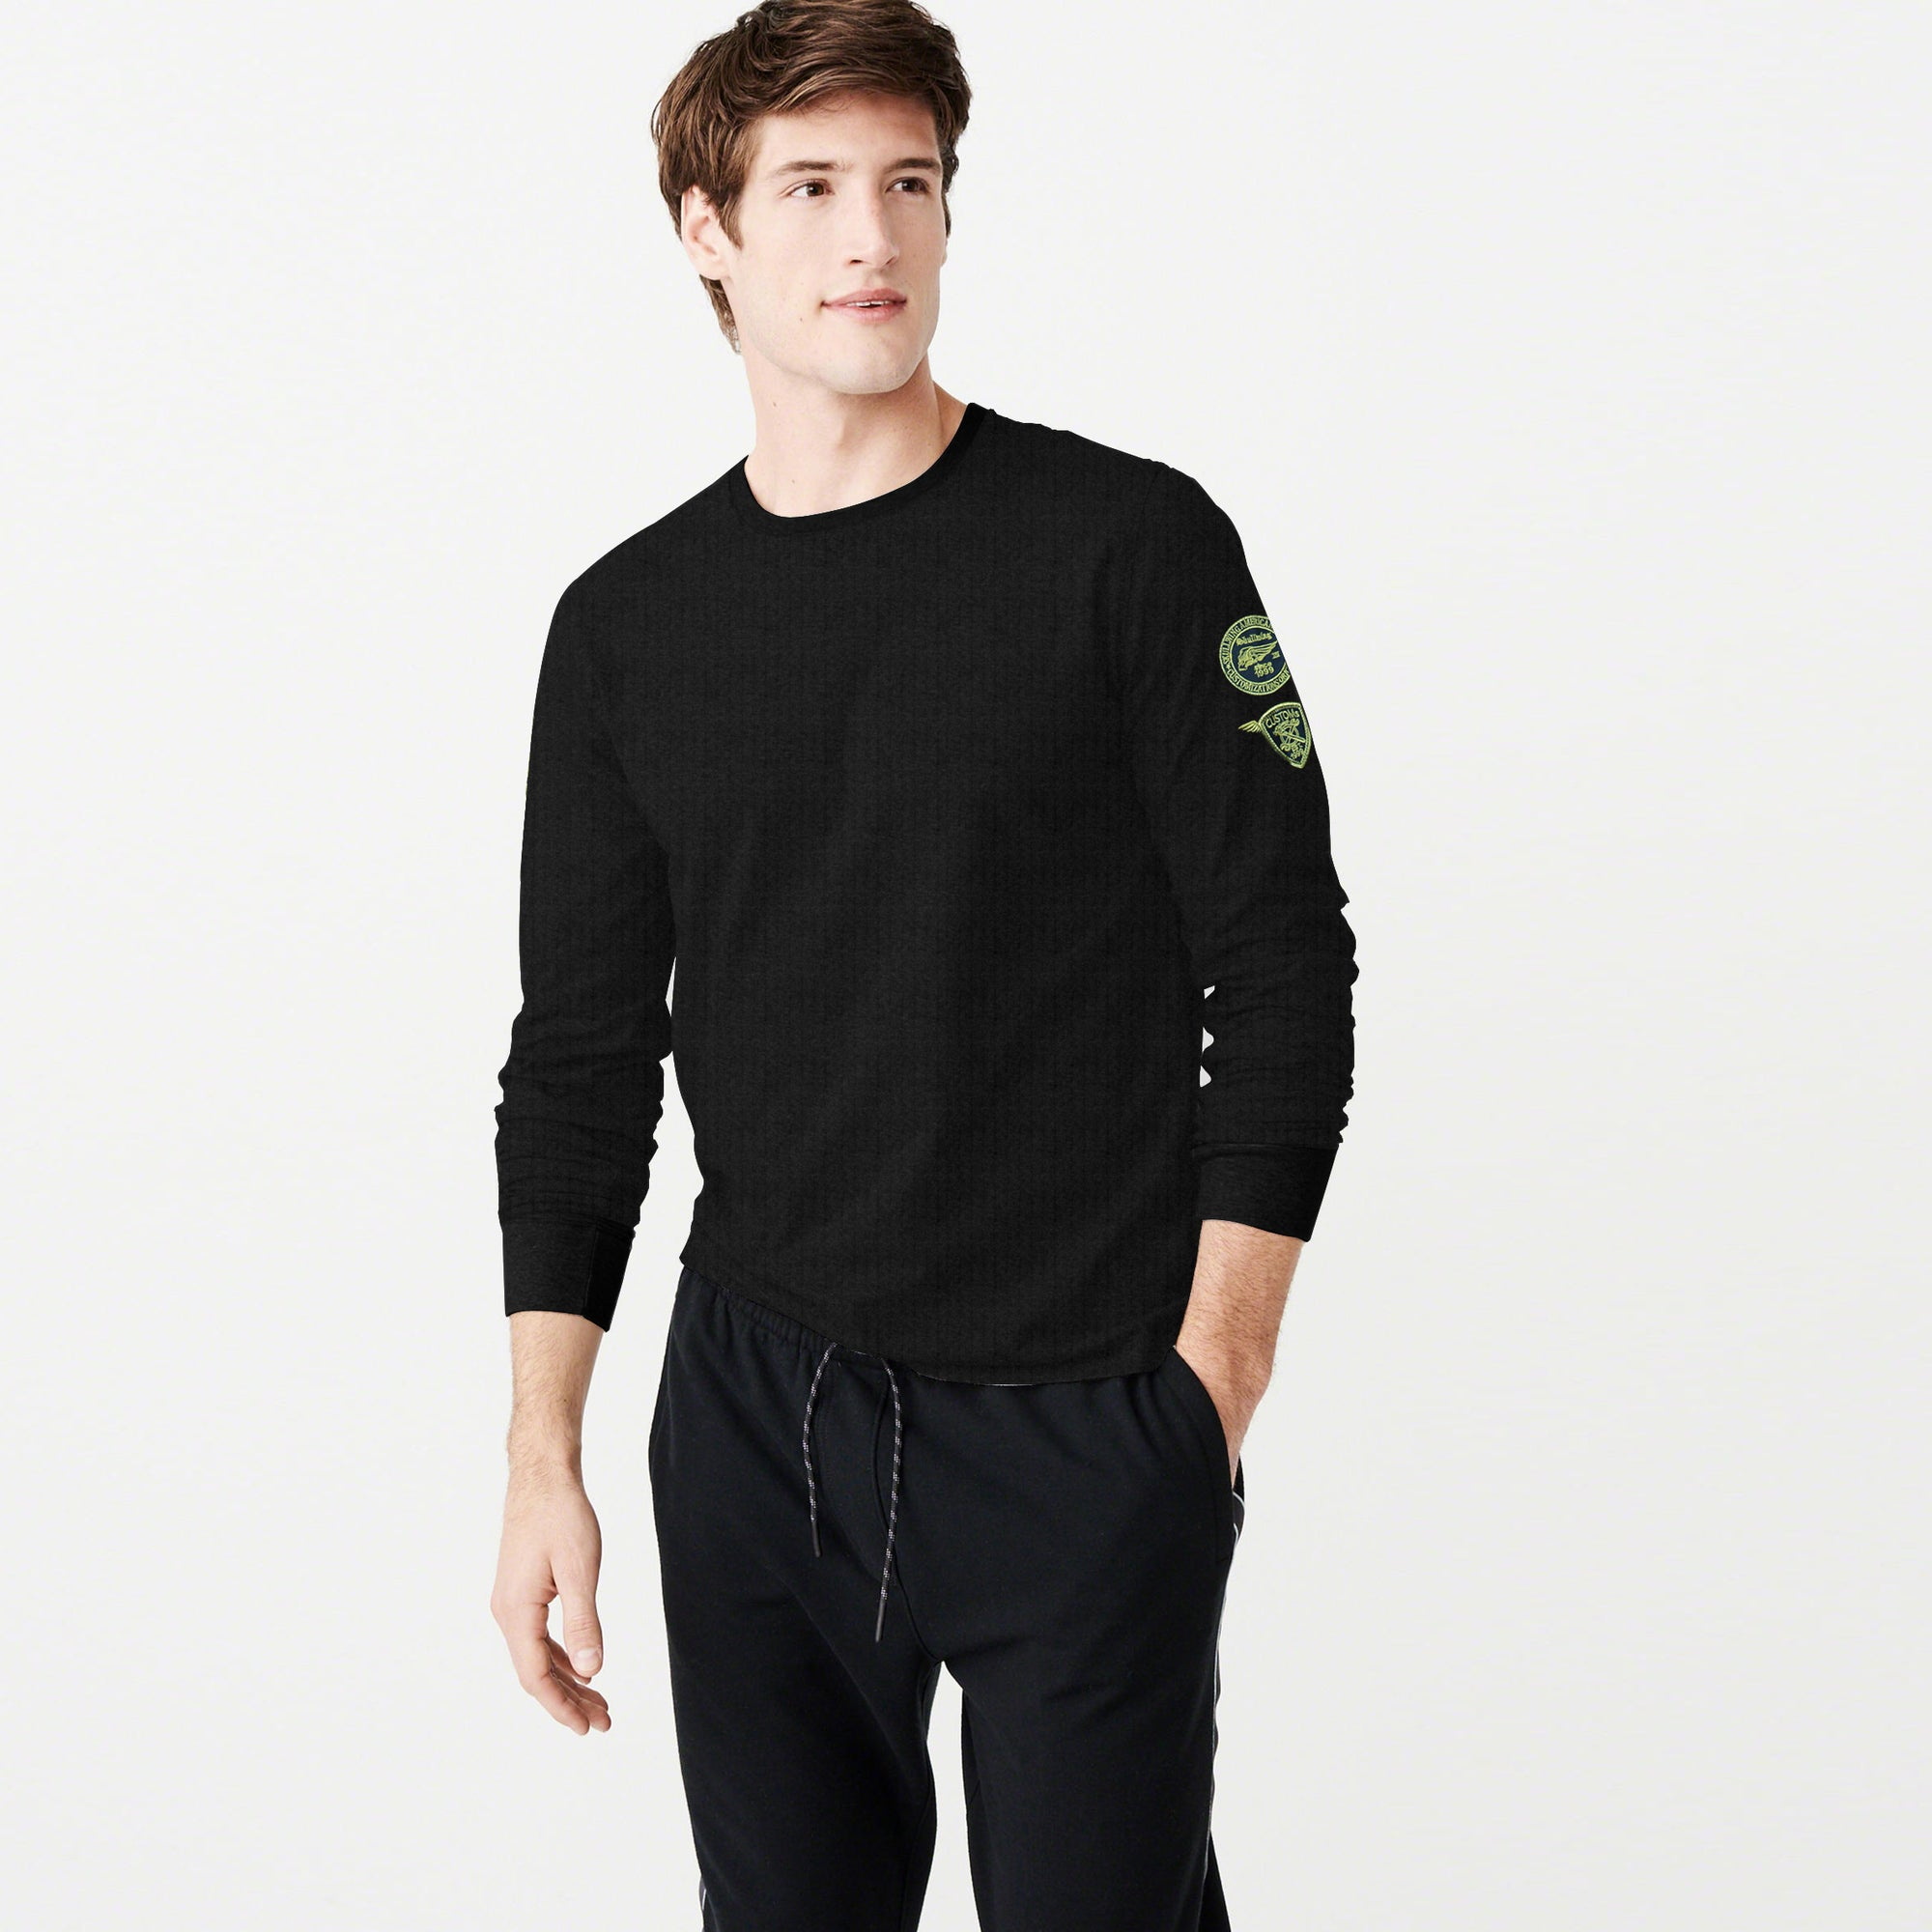 04315416623 USF Thermal Long Sleeve Tee Shirt For Men-Dark Charcoal-BE5597 ...